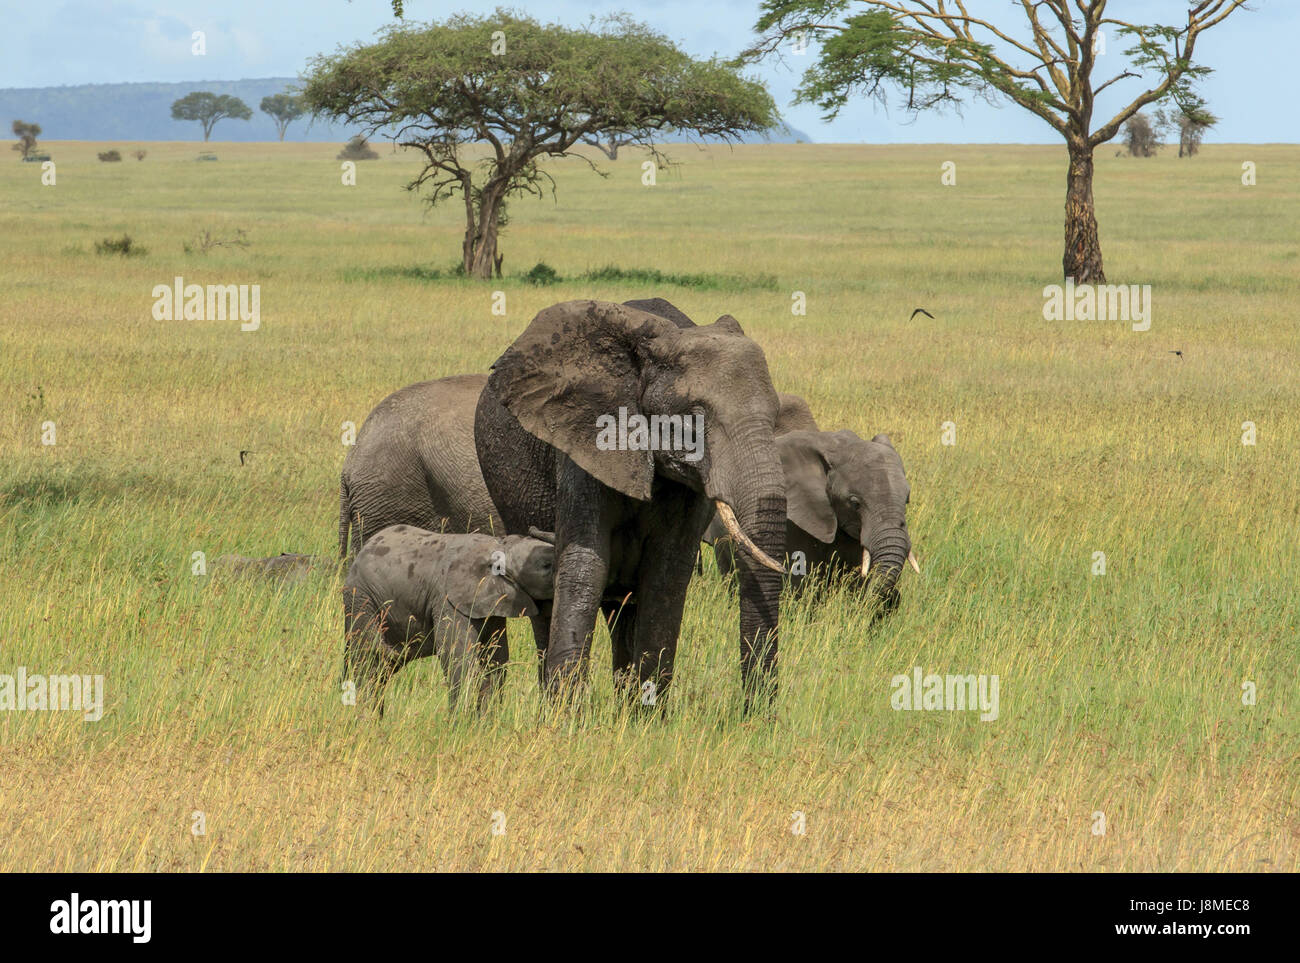 A tiny weeks old African Elephant calf feeds from its mother - Stock Image